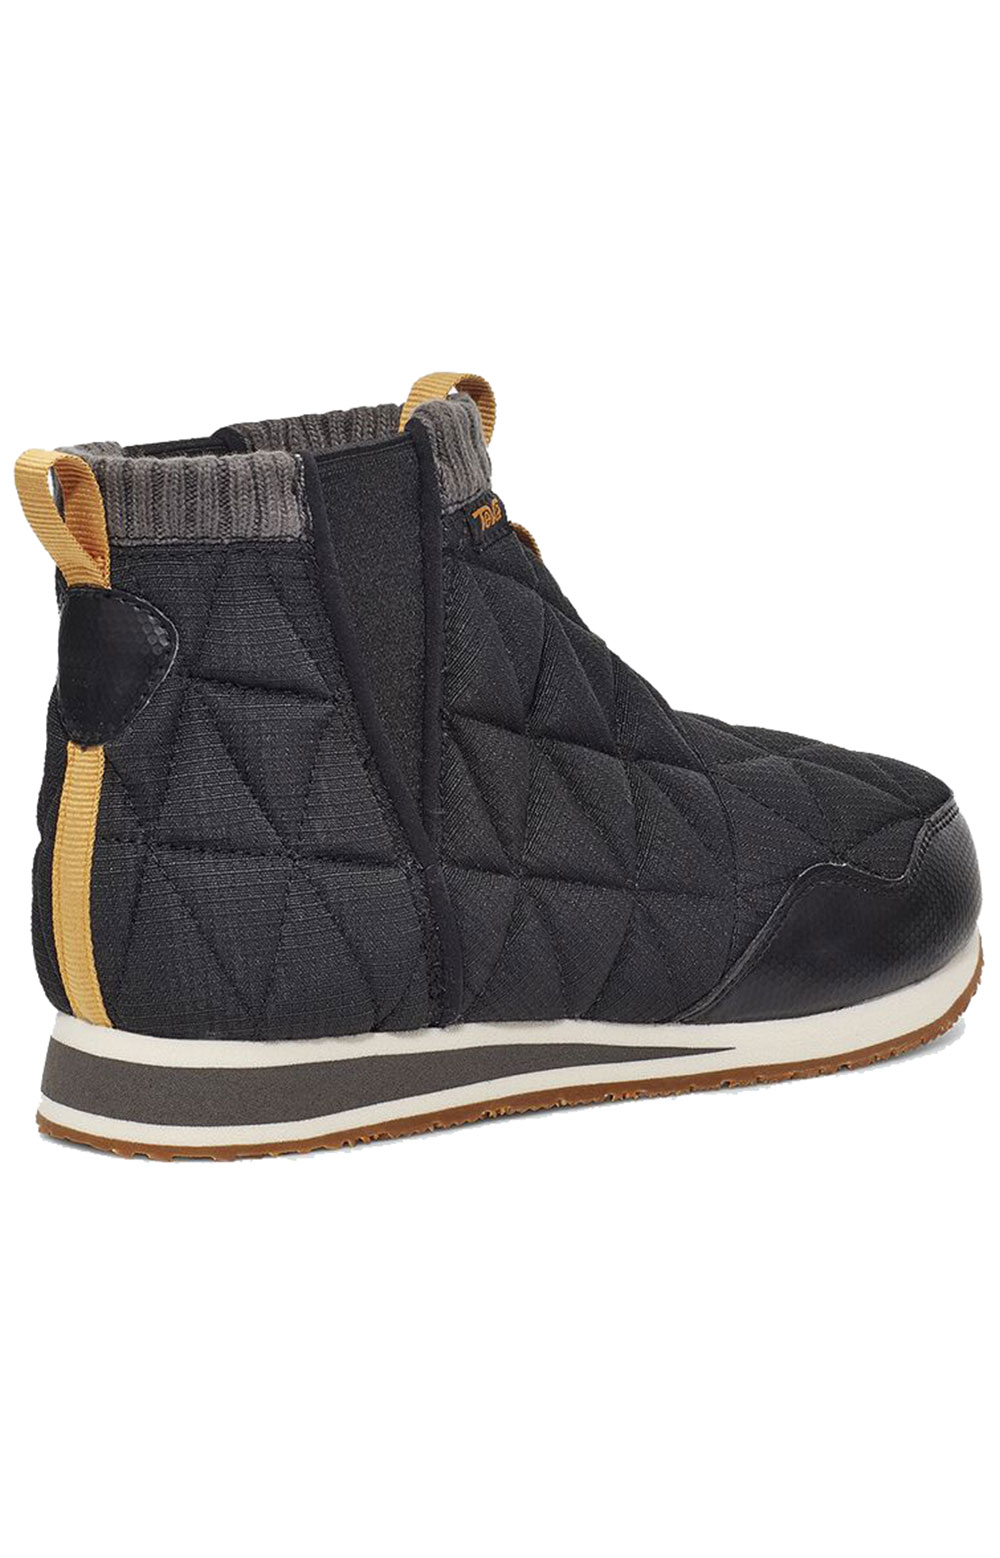 (1123431) ReEMBER Mid Shoes - Black 4